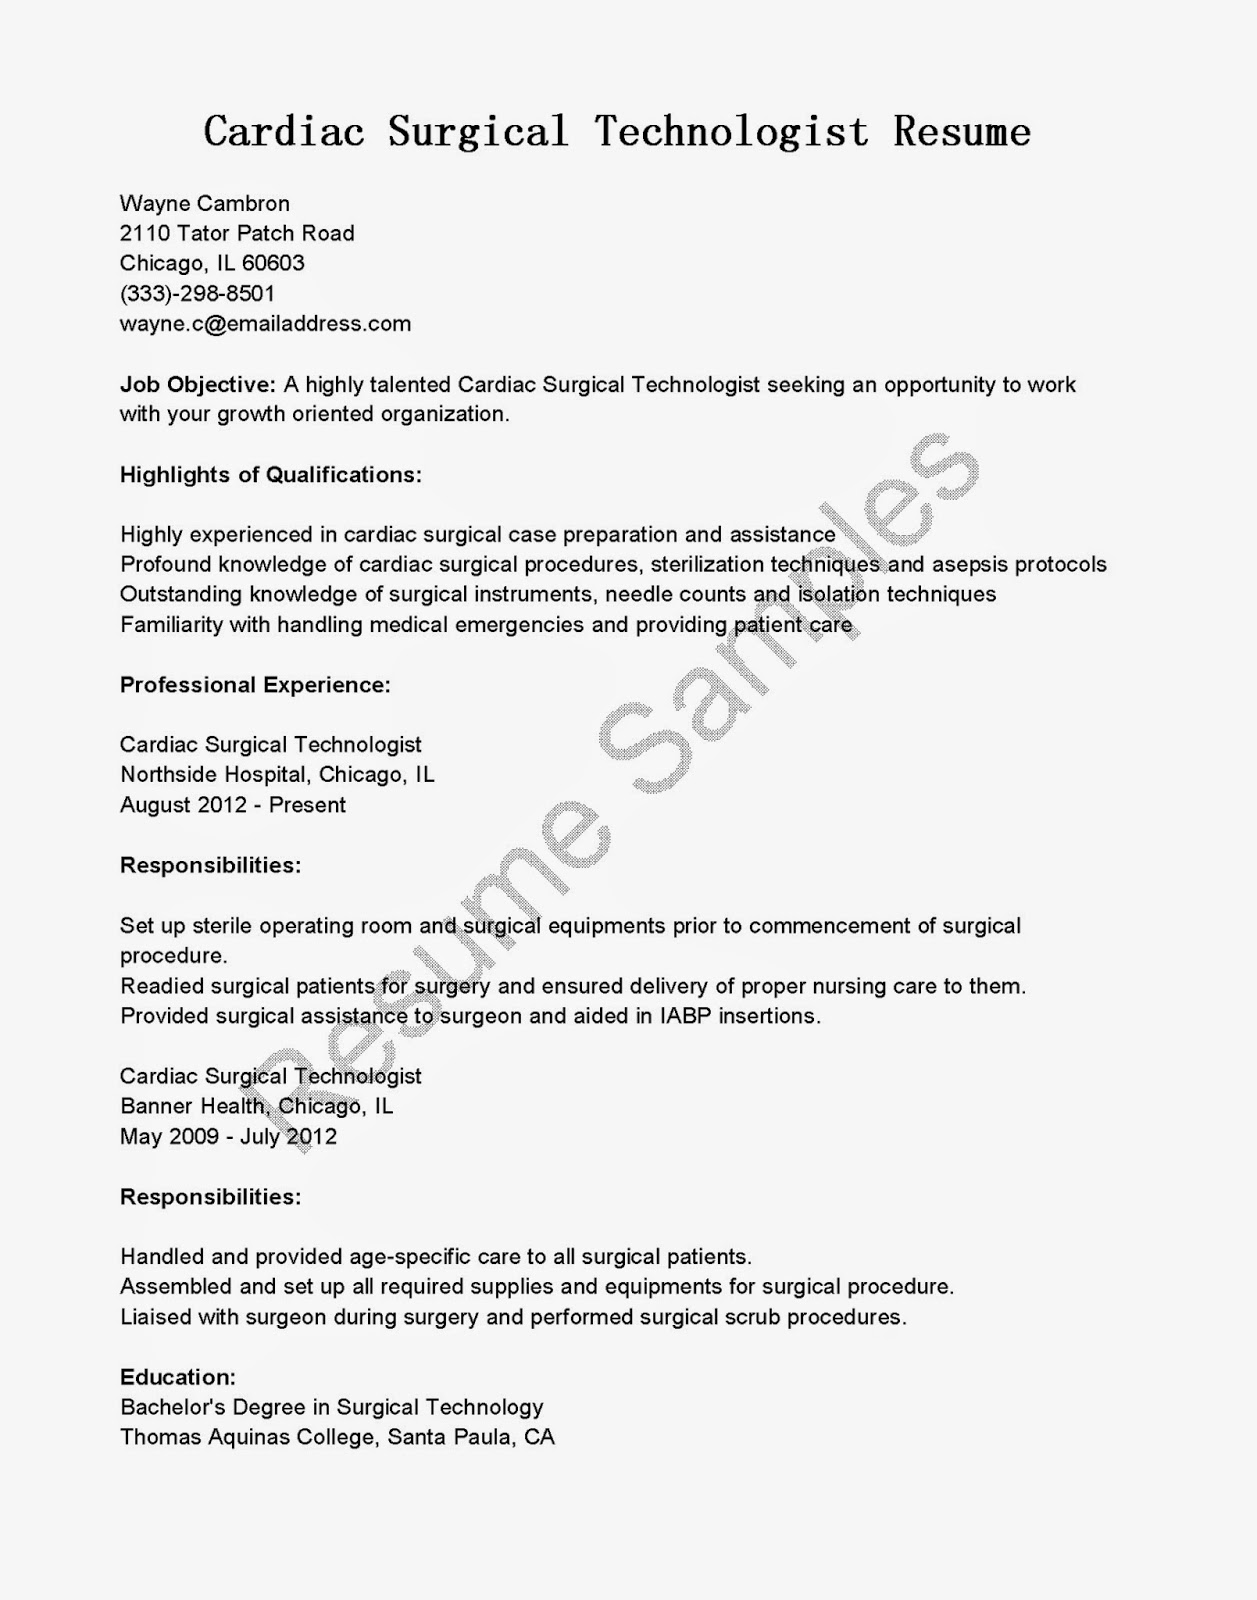 Resume Objective For Surgical Technologist Resume Samples Cardiac Surgical Technologist Resume Sample